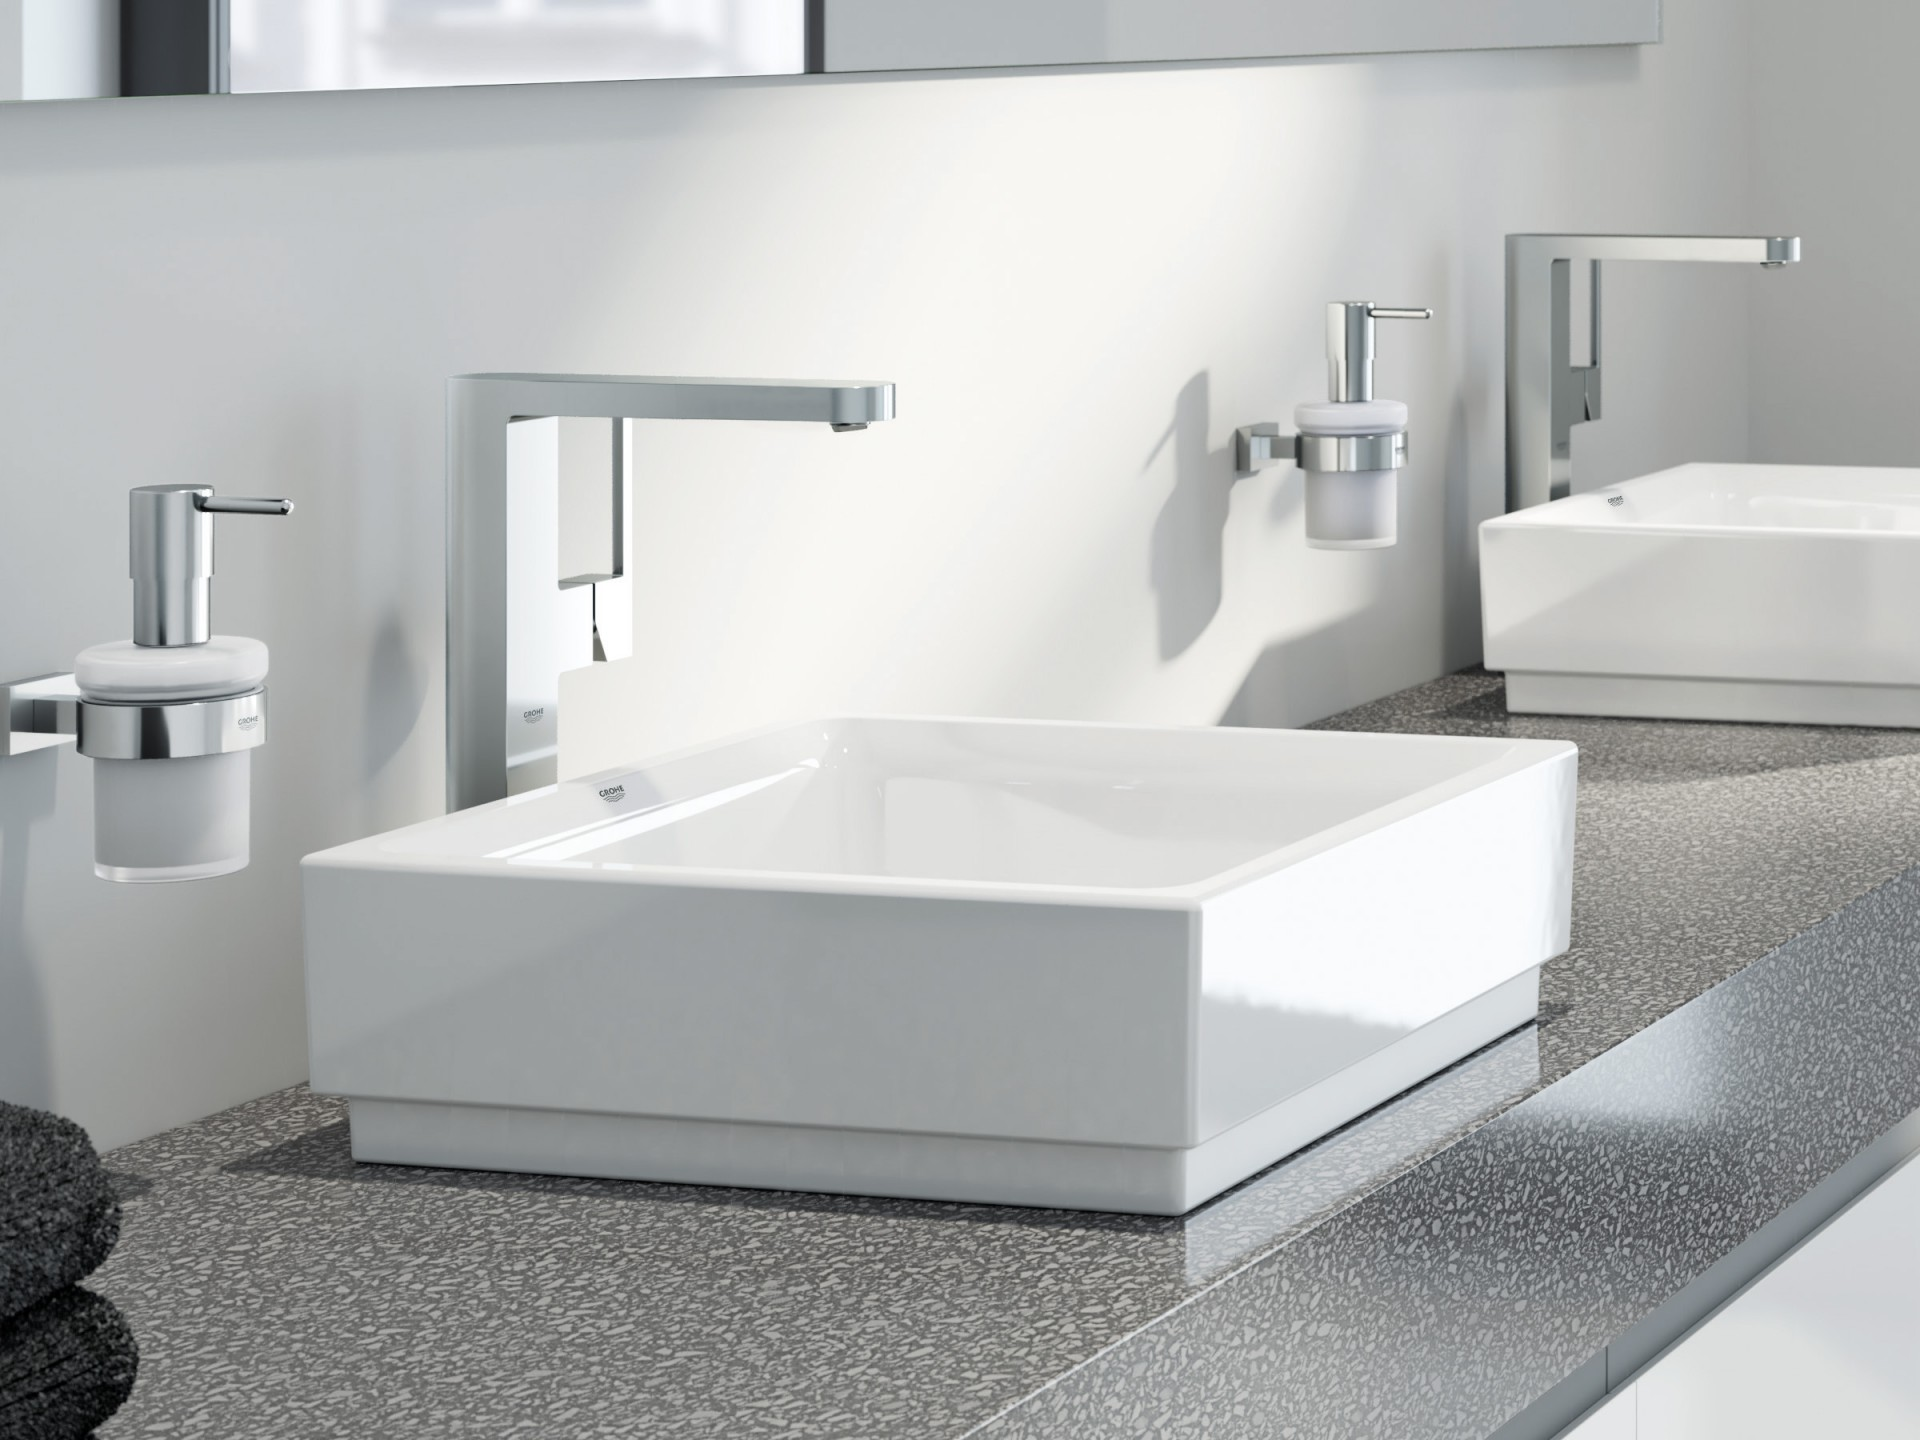 squarerooms grohe sink washbasin white faucet